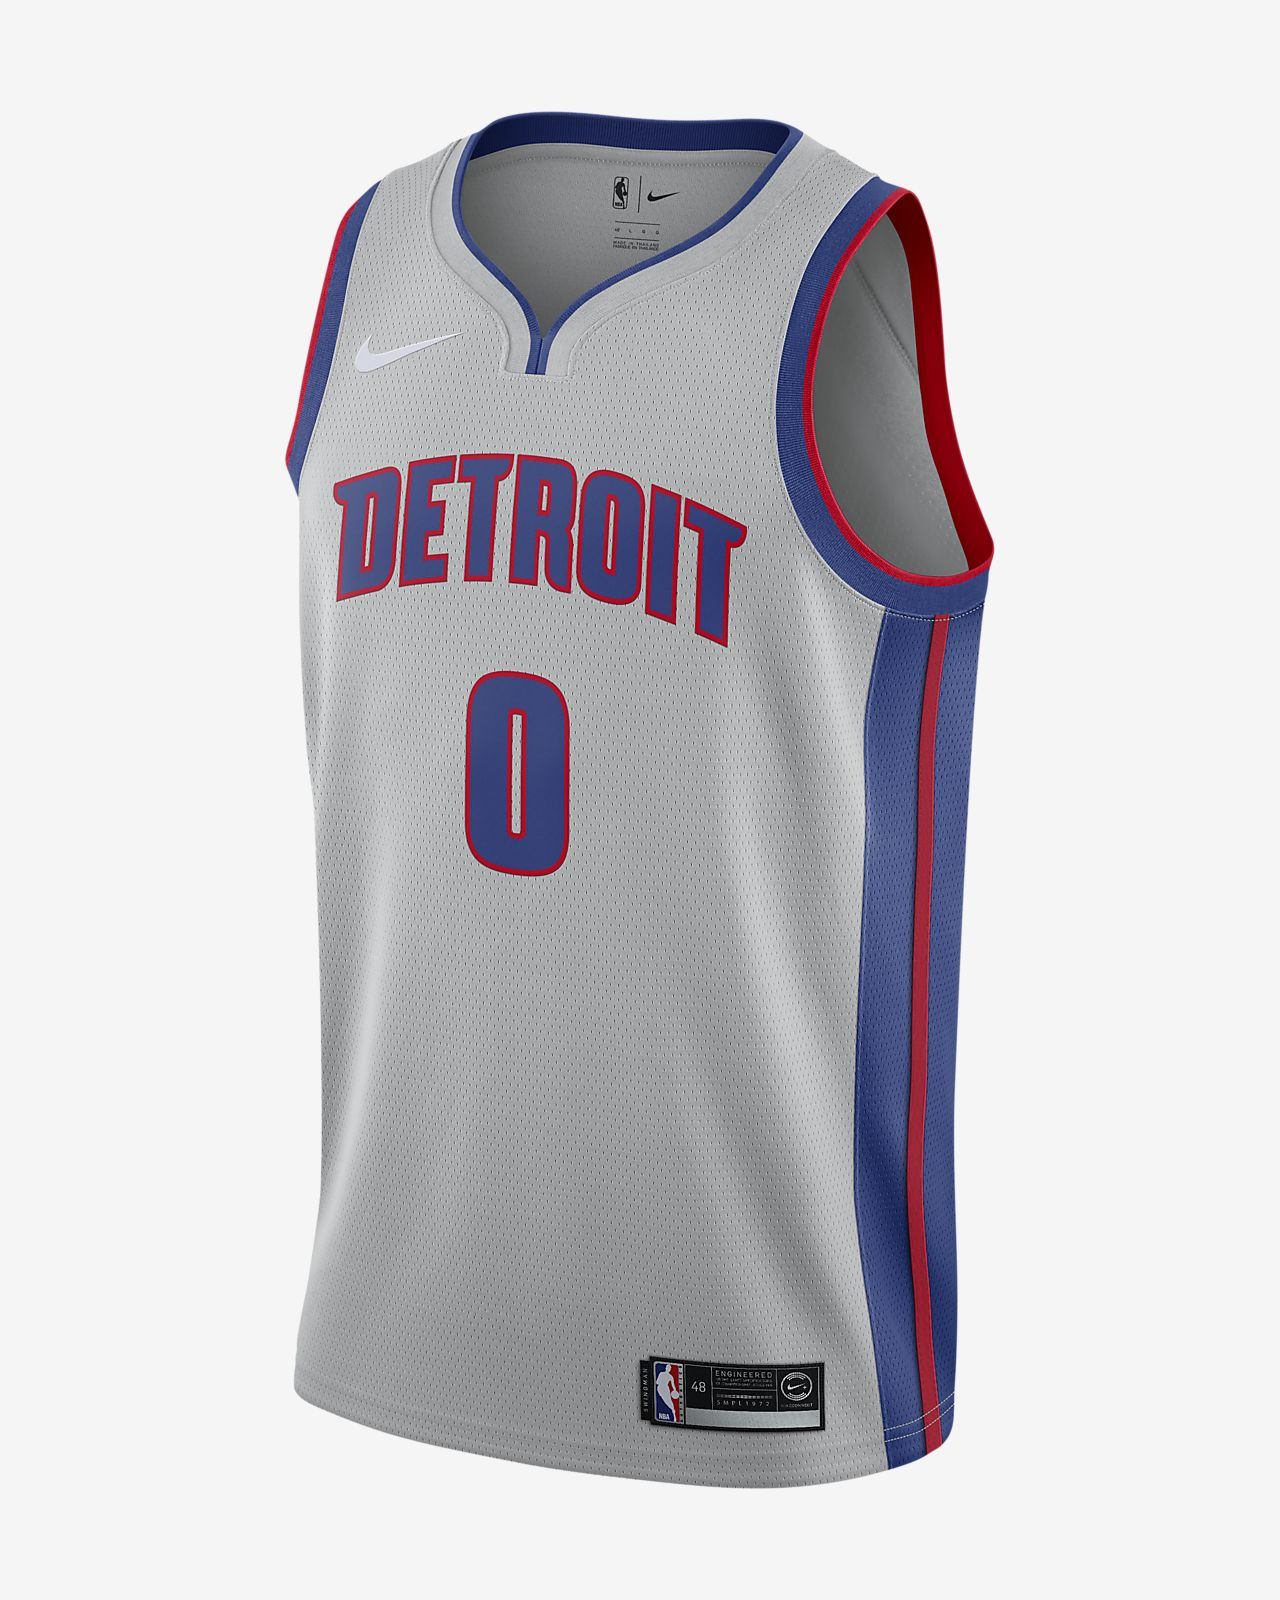 1bcf916c3d1 Men s Nike NBA Connected Jersey. Andre Drummond Statement Edition Swingman (Detroit  Pistons)